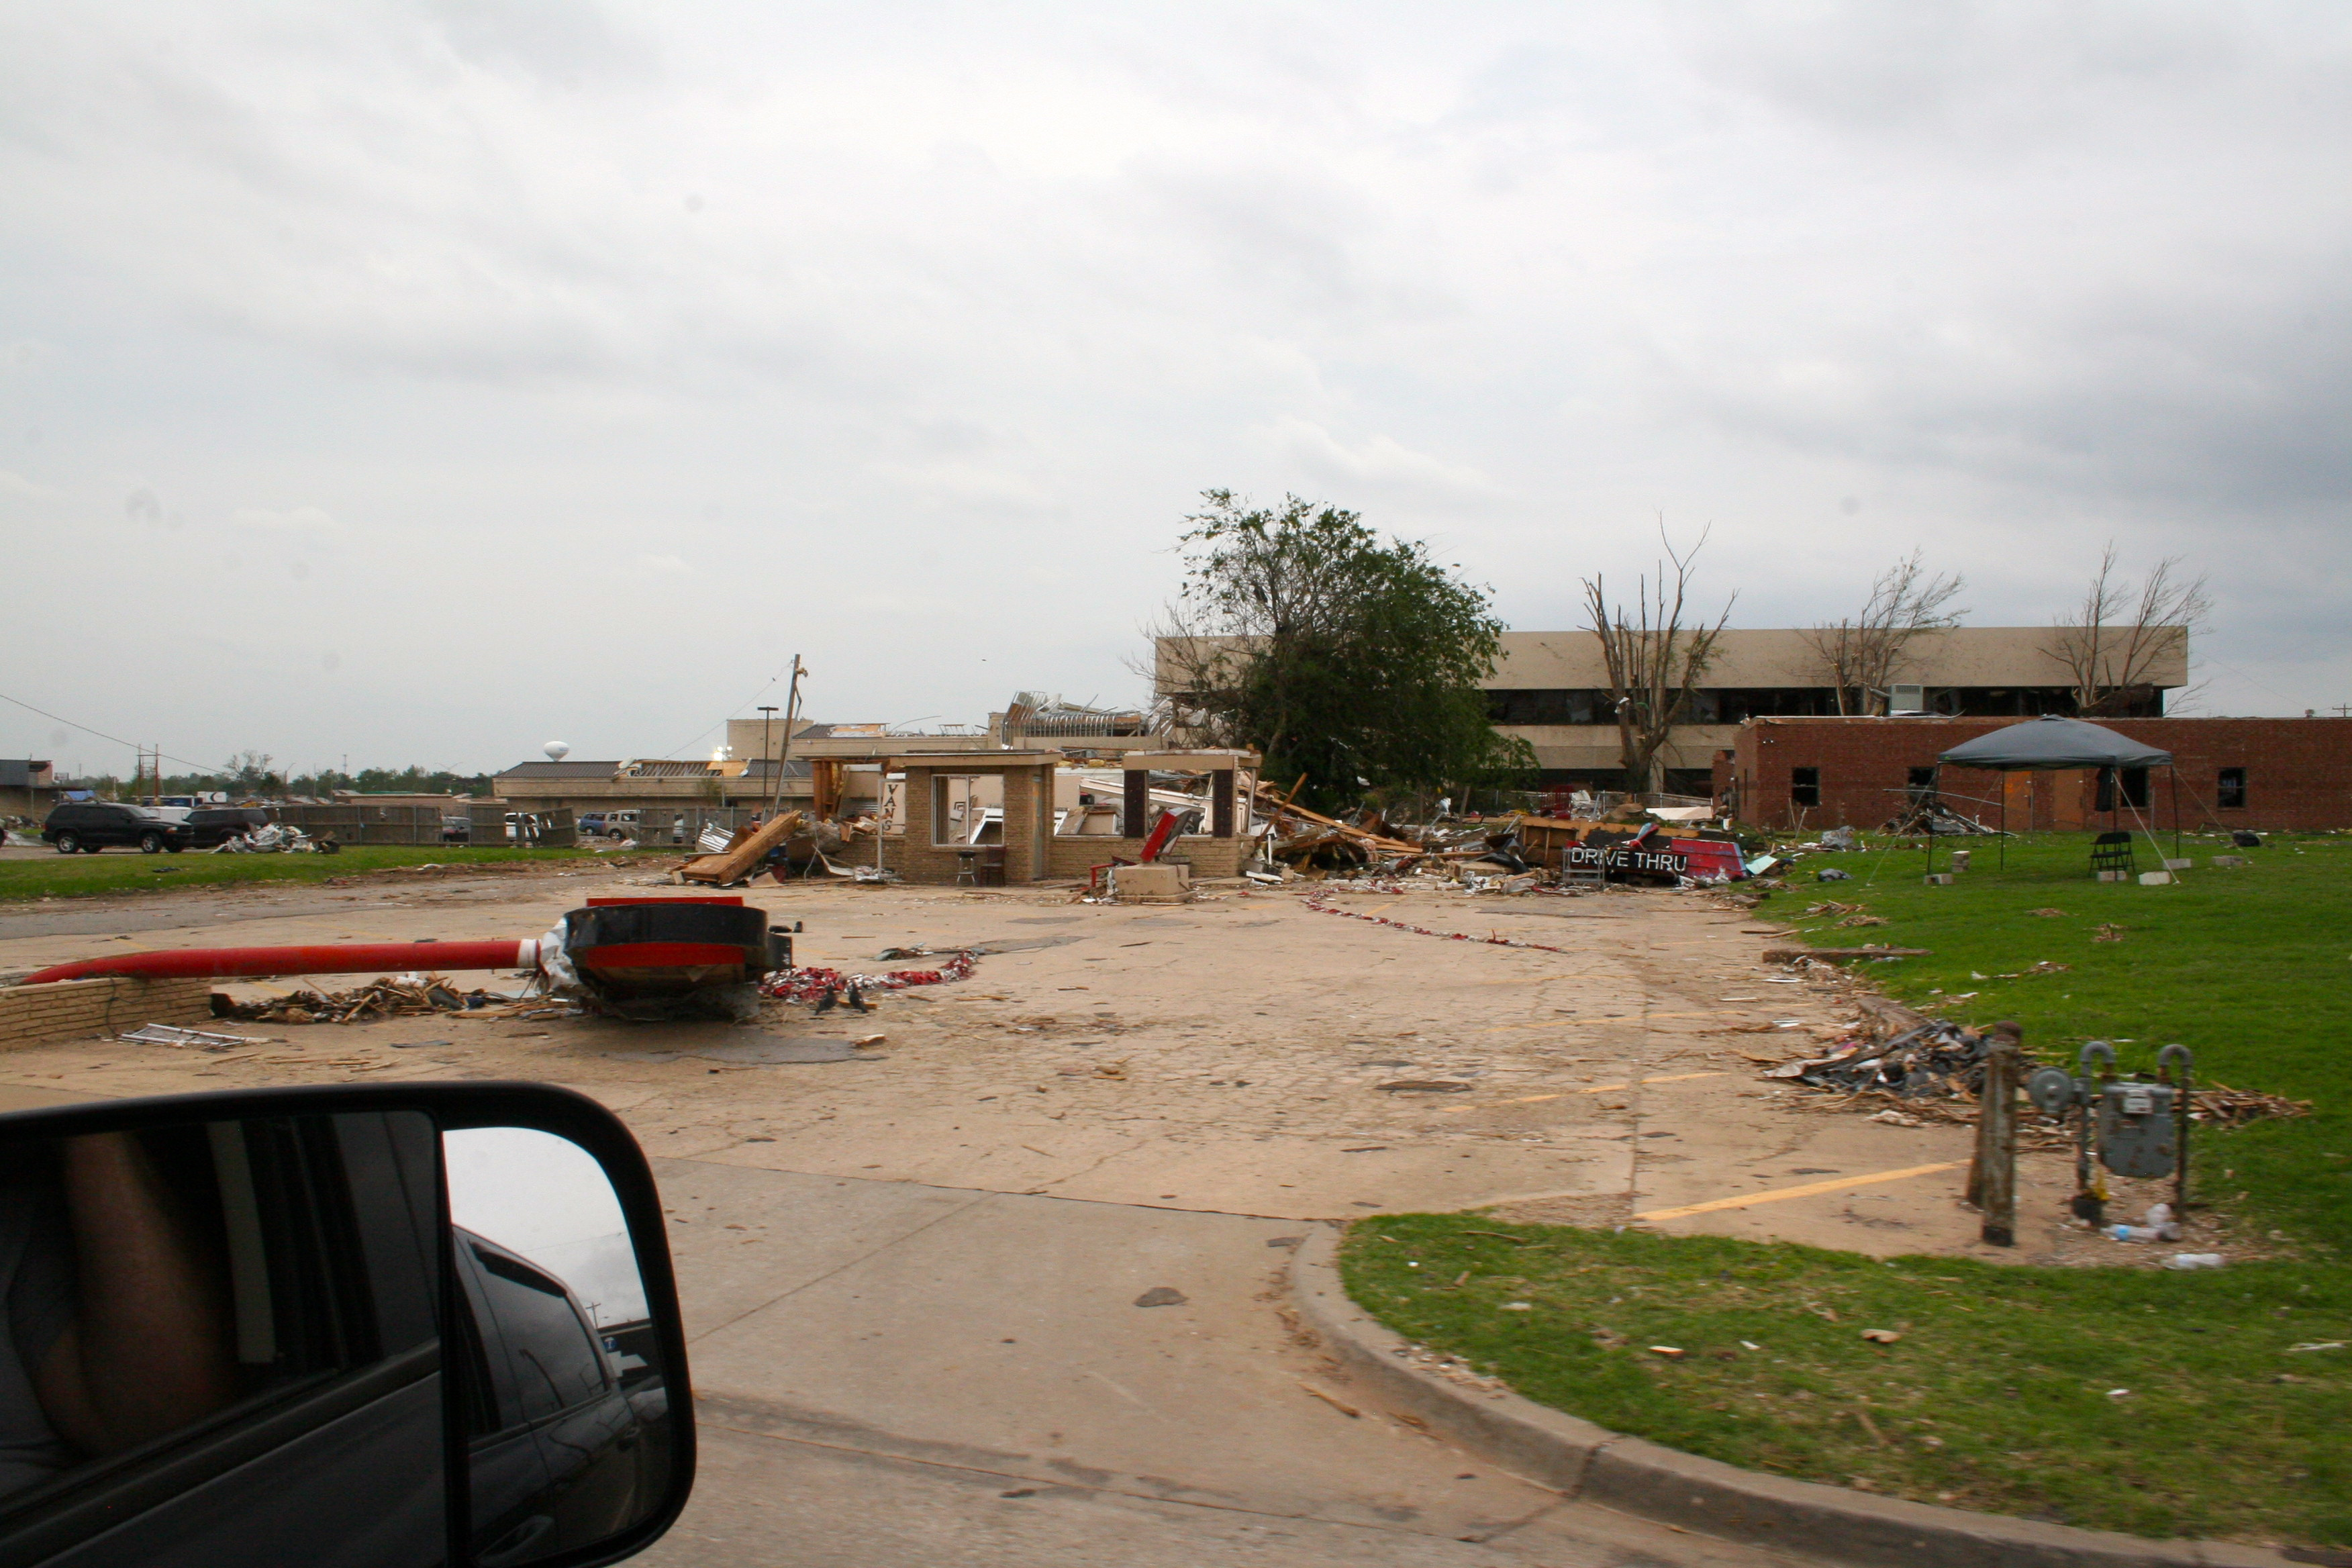 Moore OK. damage